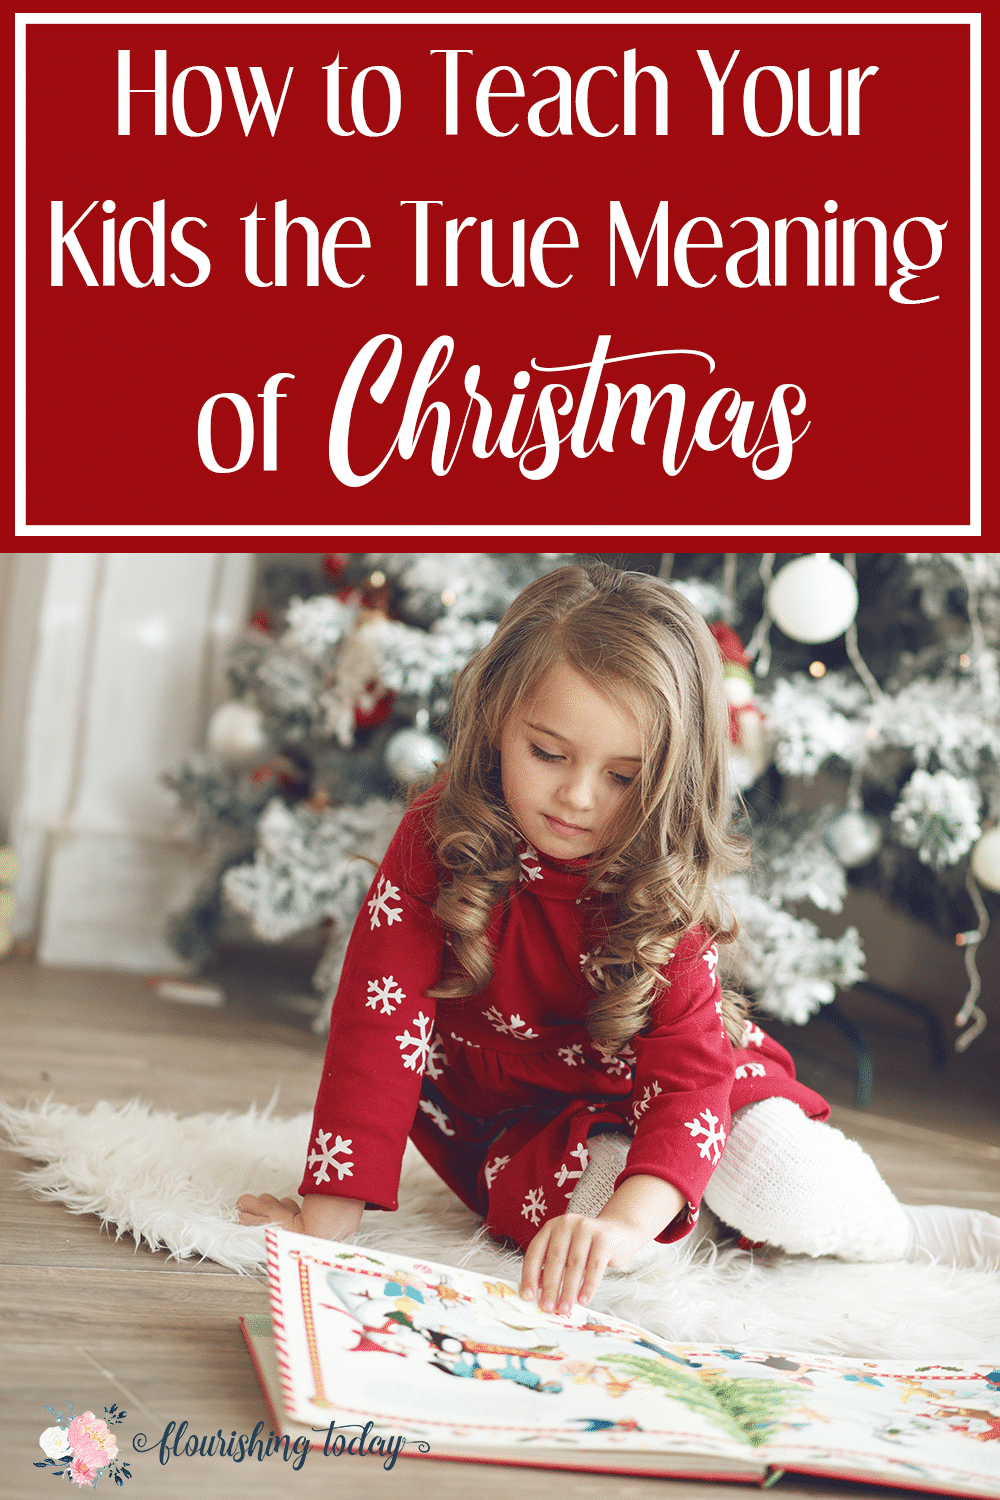 How to Teach Your Kids the True Meaning of Christmas - Flourishing Today